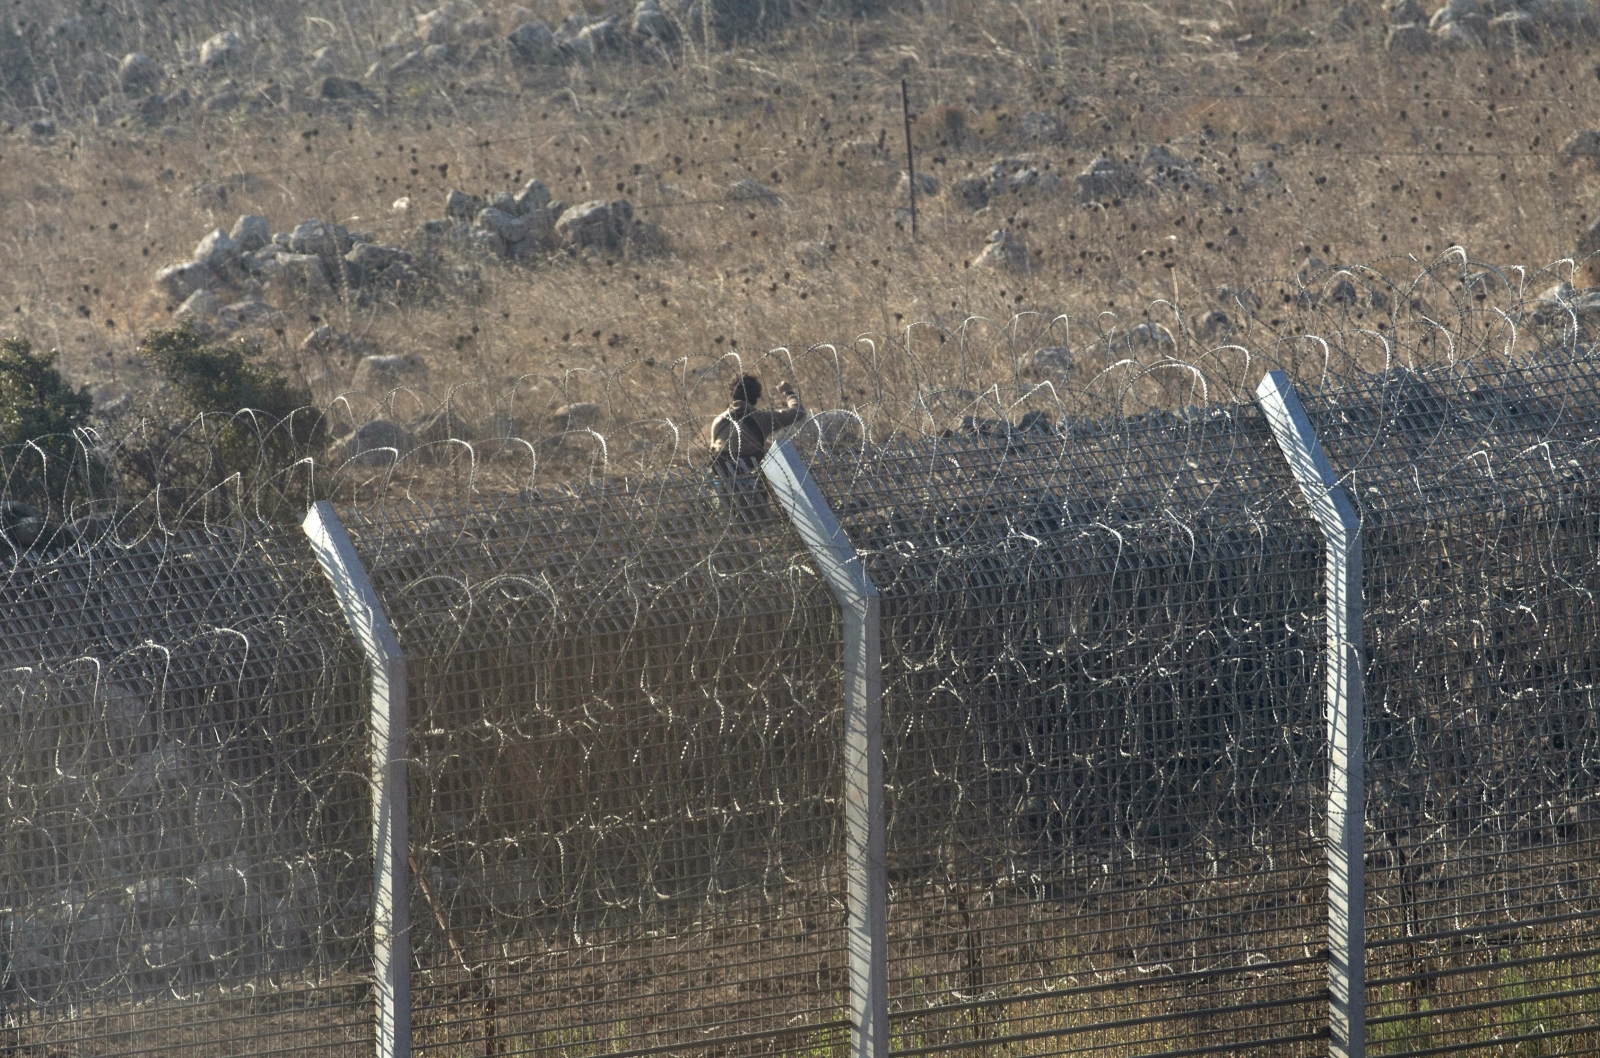 A rebel fighter is seen during a battle with Syrian army soldiers in Syria near the border fence with the Israeli-occupied Golan Heights